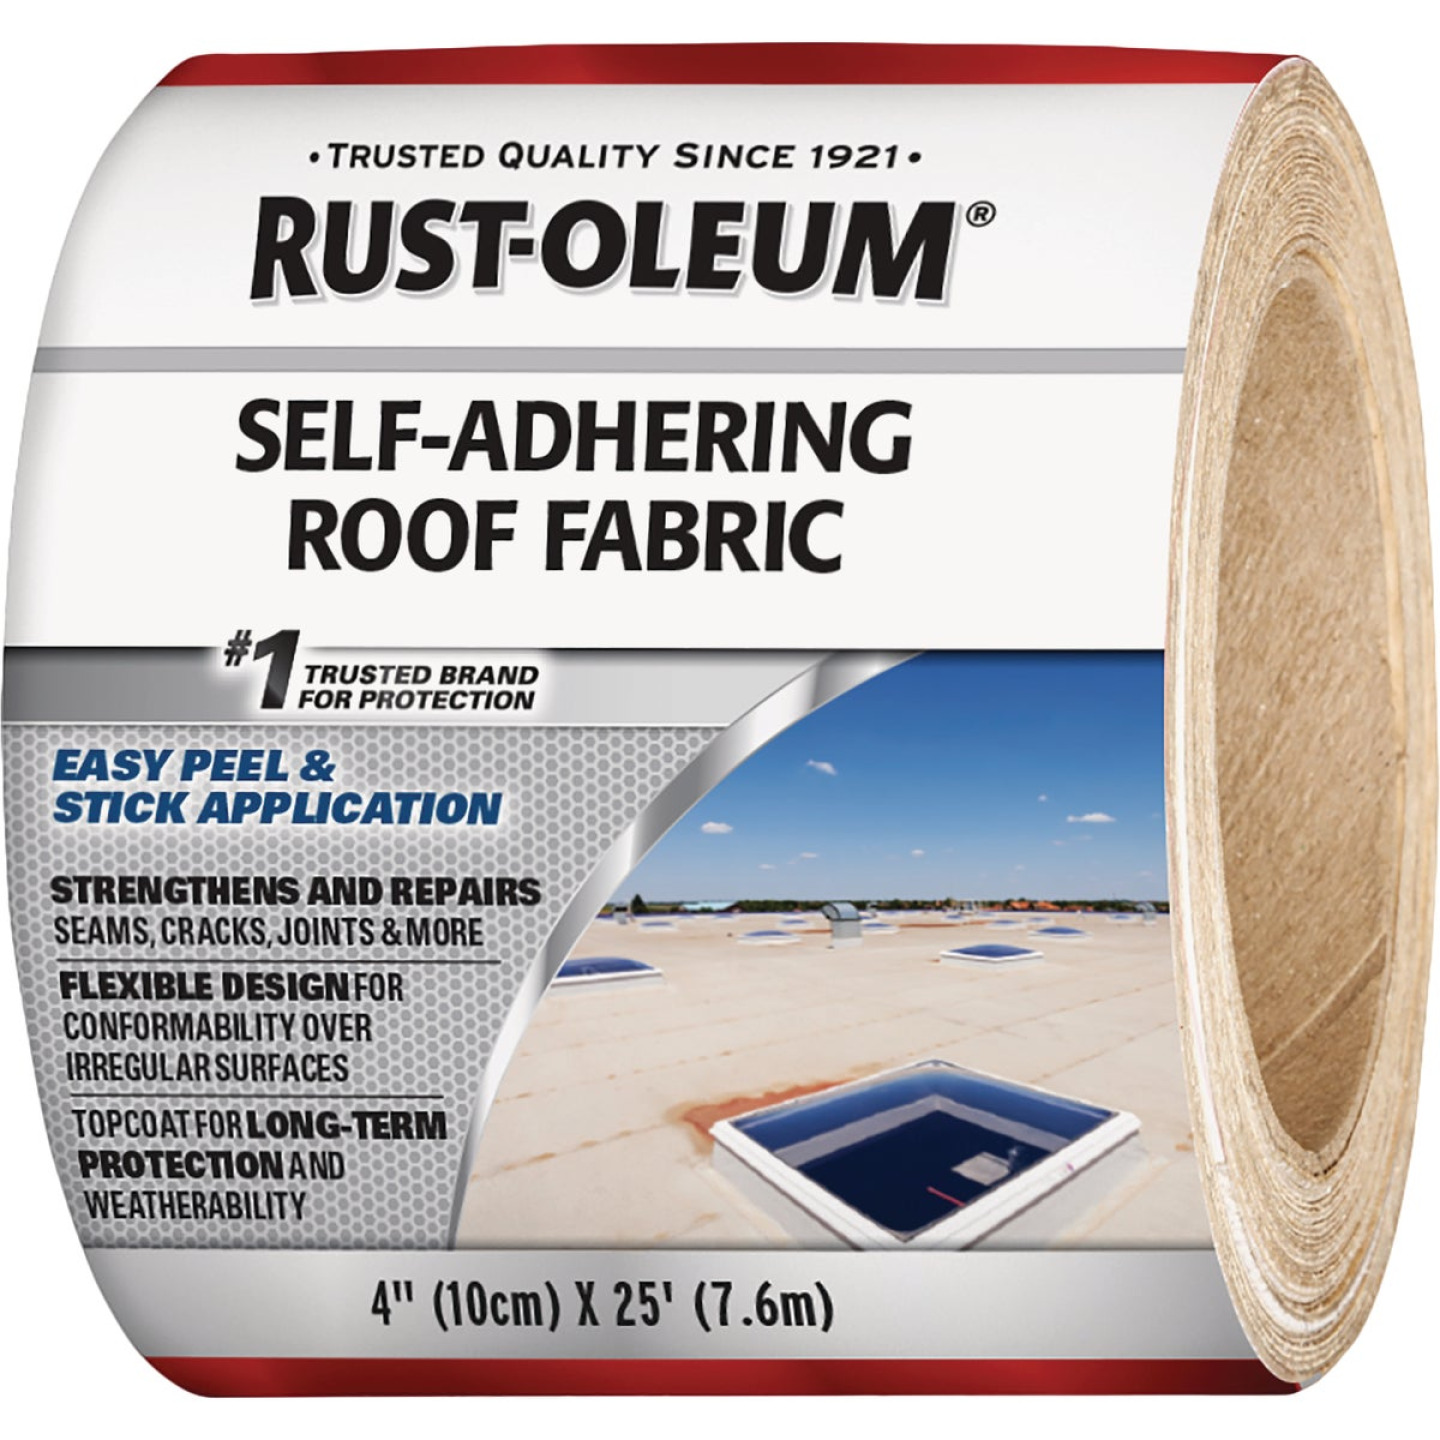 Rust-Oleum 4 In. x 25 Ft. Self-Adhering Roof Fabric Image 1